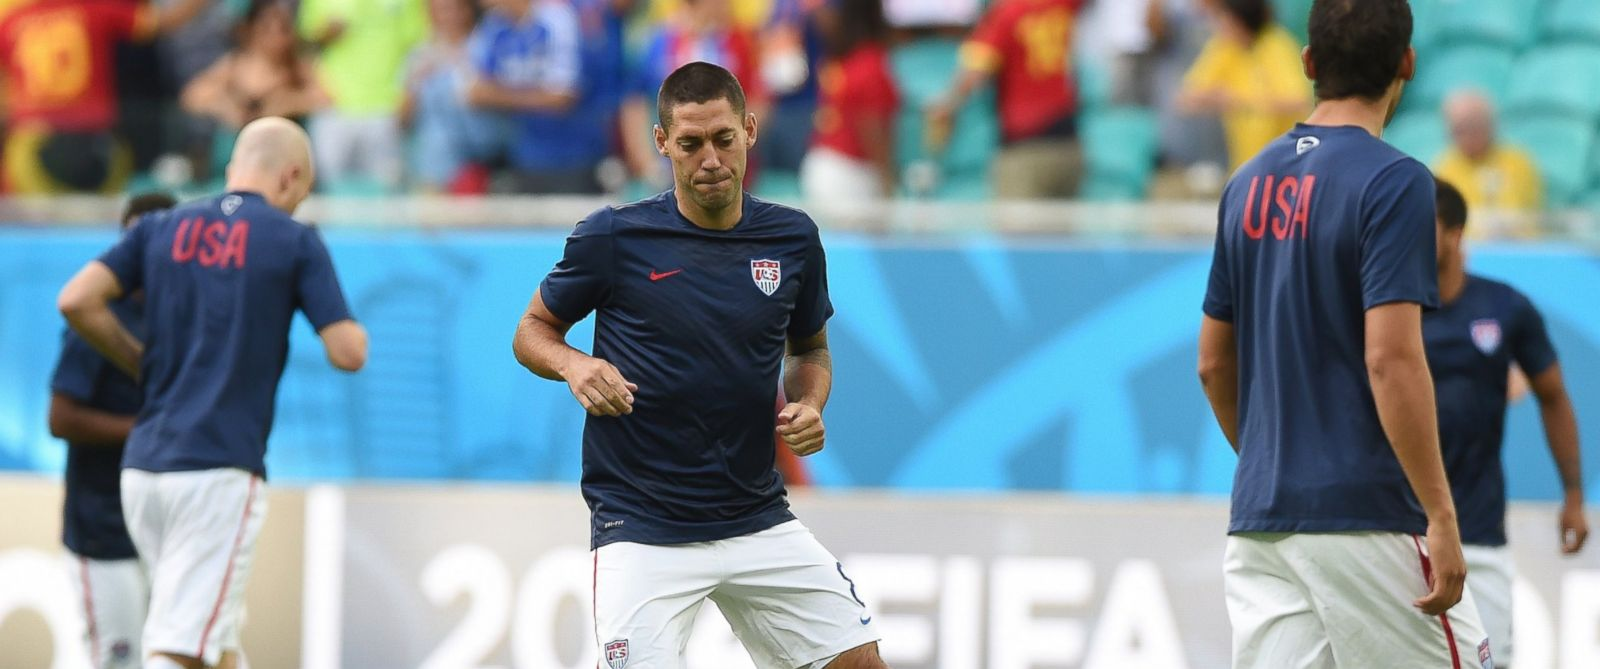 PHOTO: US forward Clint Dempsey (C) warms up with teammates ahead of the Round of 16 football match between Belgium and USA at The Fonte Nova Arena in Salvador on July 1, 2014, during the 2014 FIFA World Cup.